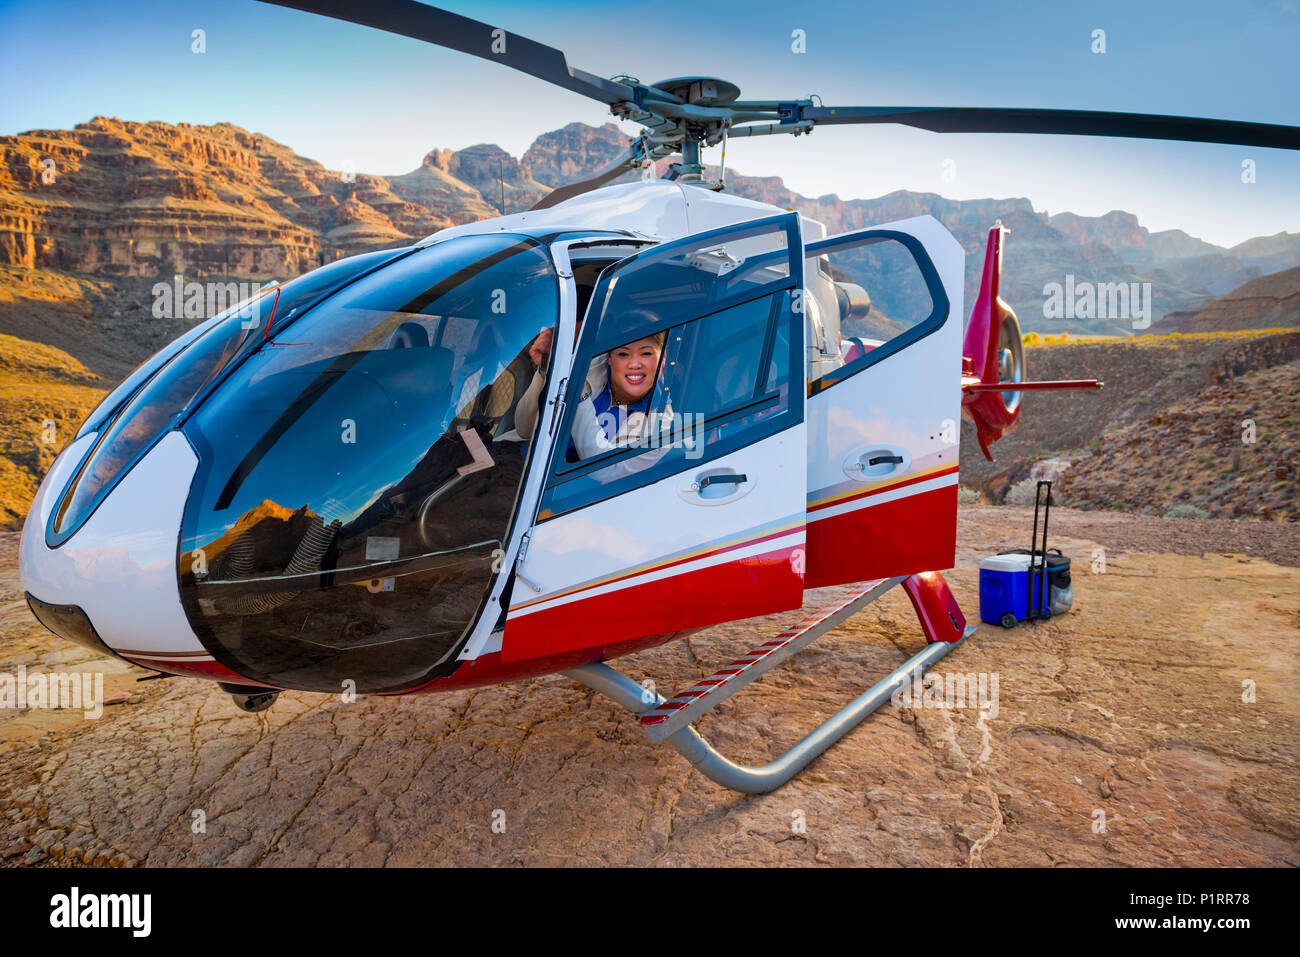 Woman posing in a landed helicopter on a Grand Canyon scenery tour; Las Vegas, Nevada, United States of America - Stock Image